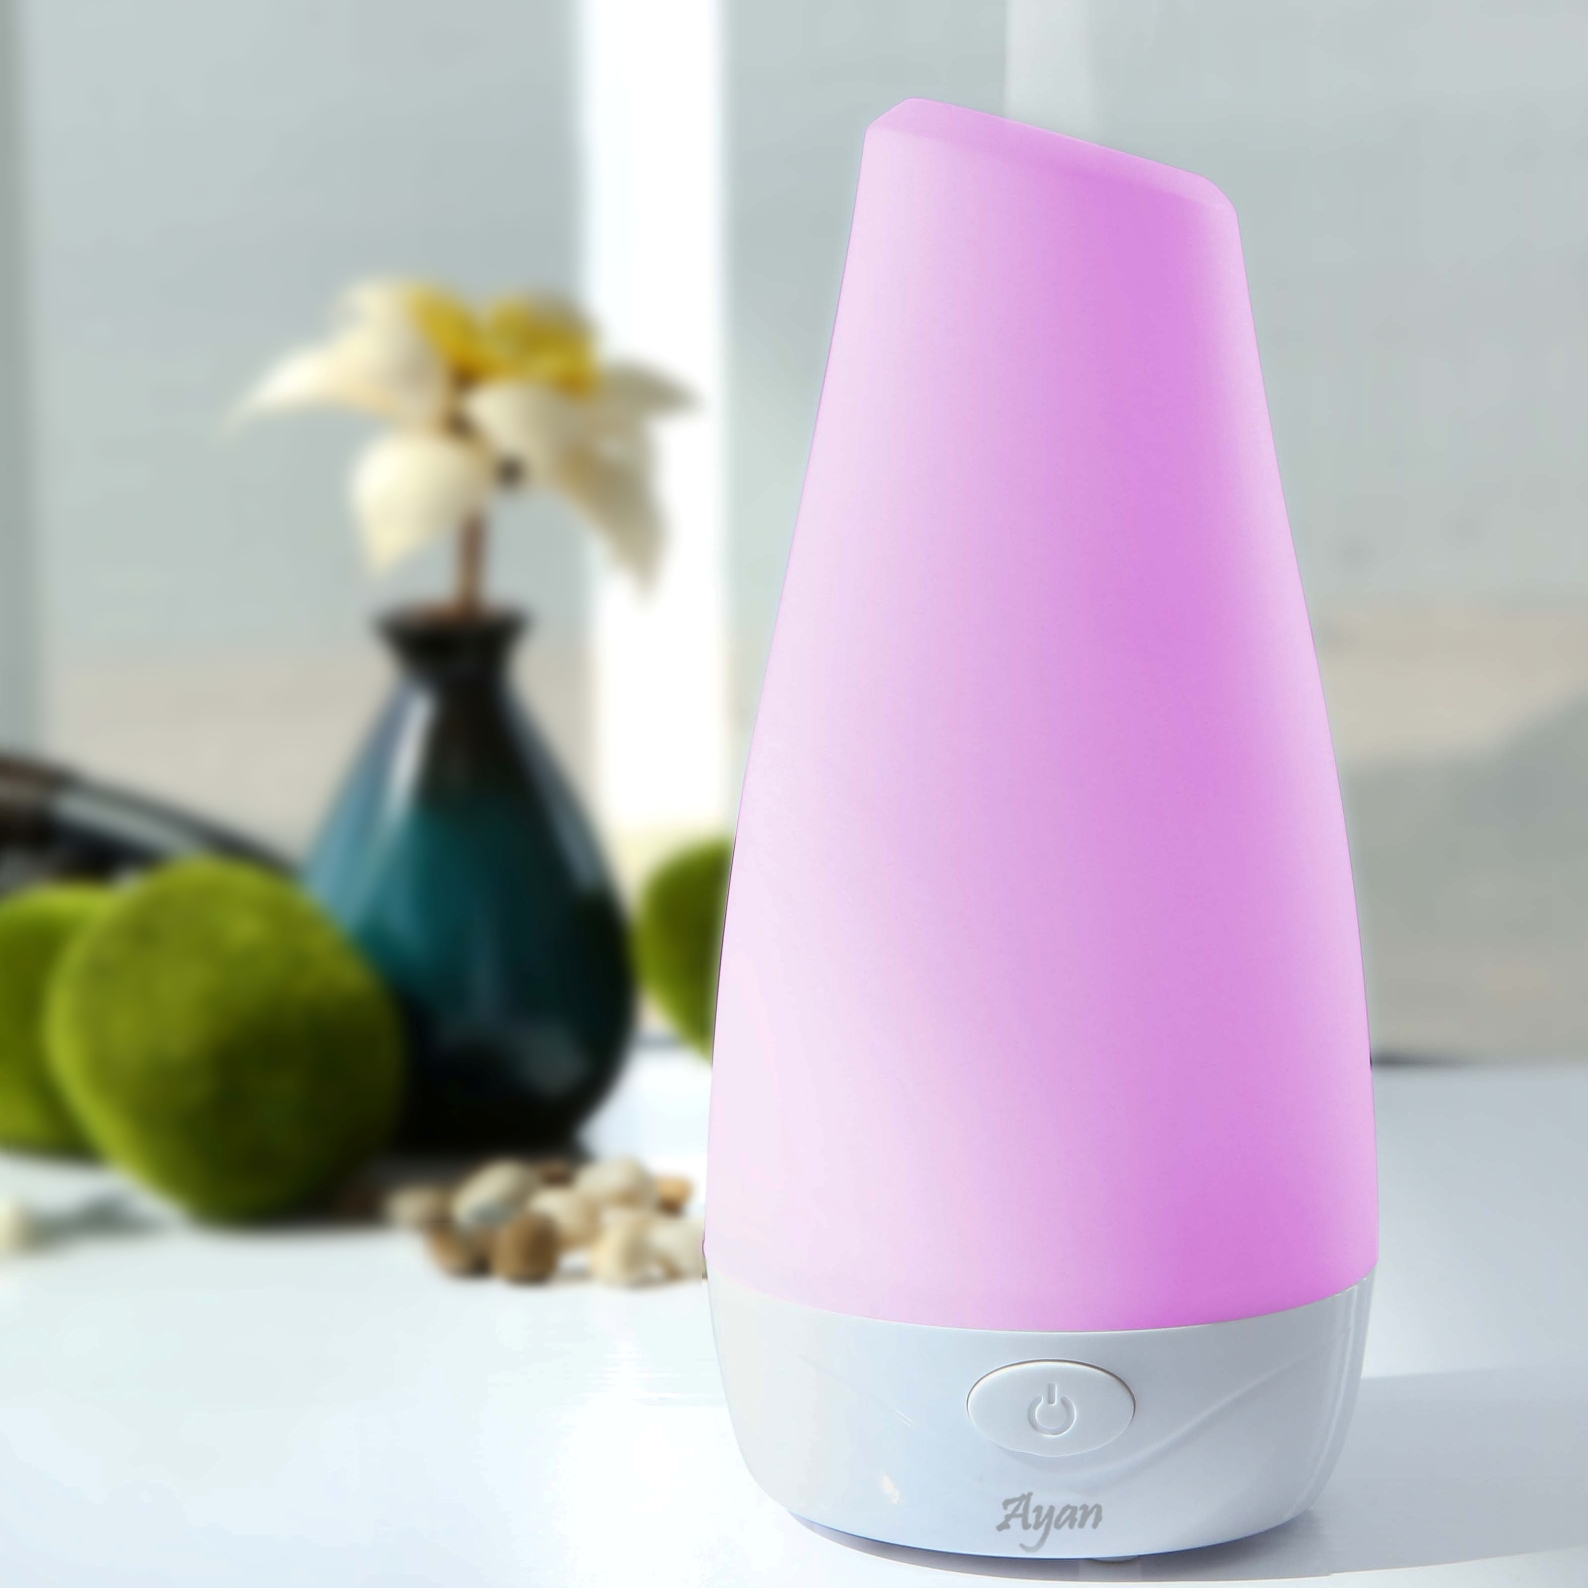 Ayan Essential Oil Aroma Diffuser and Humidifier b